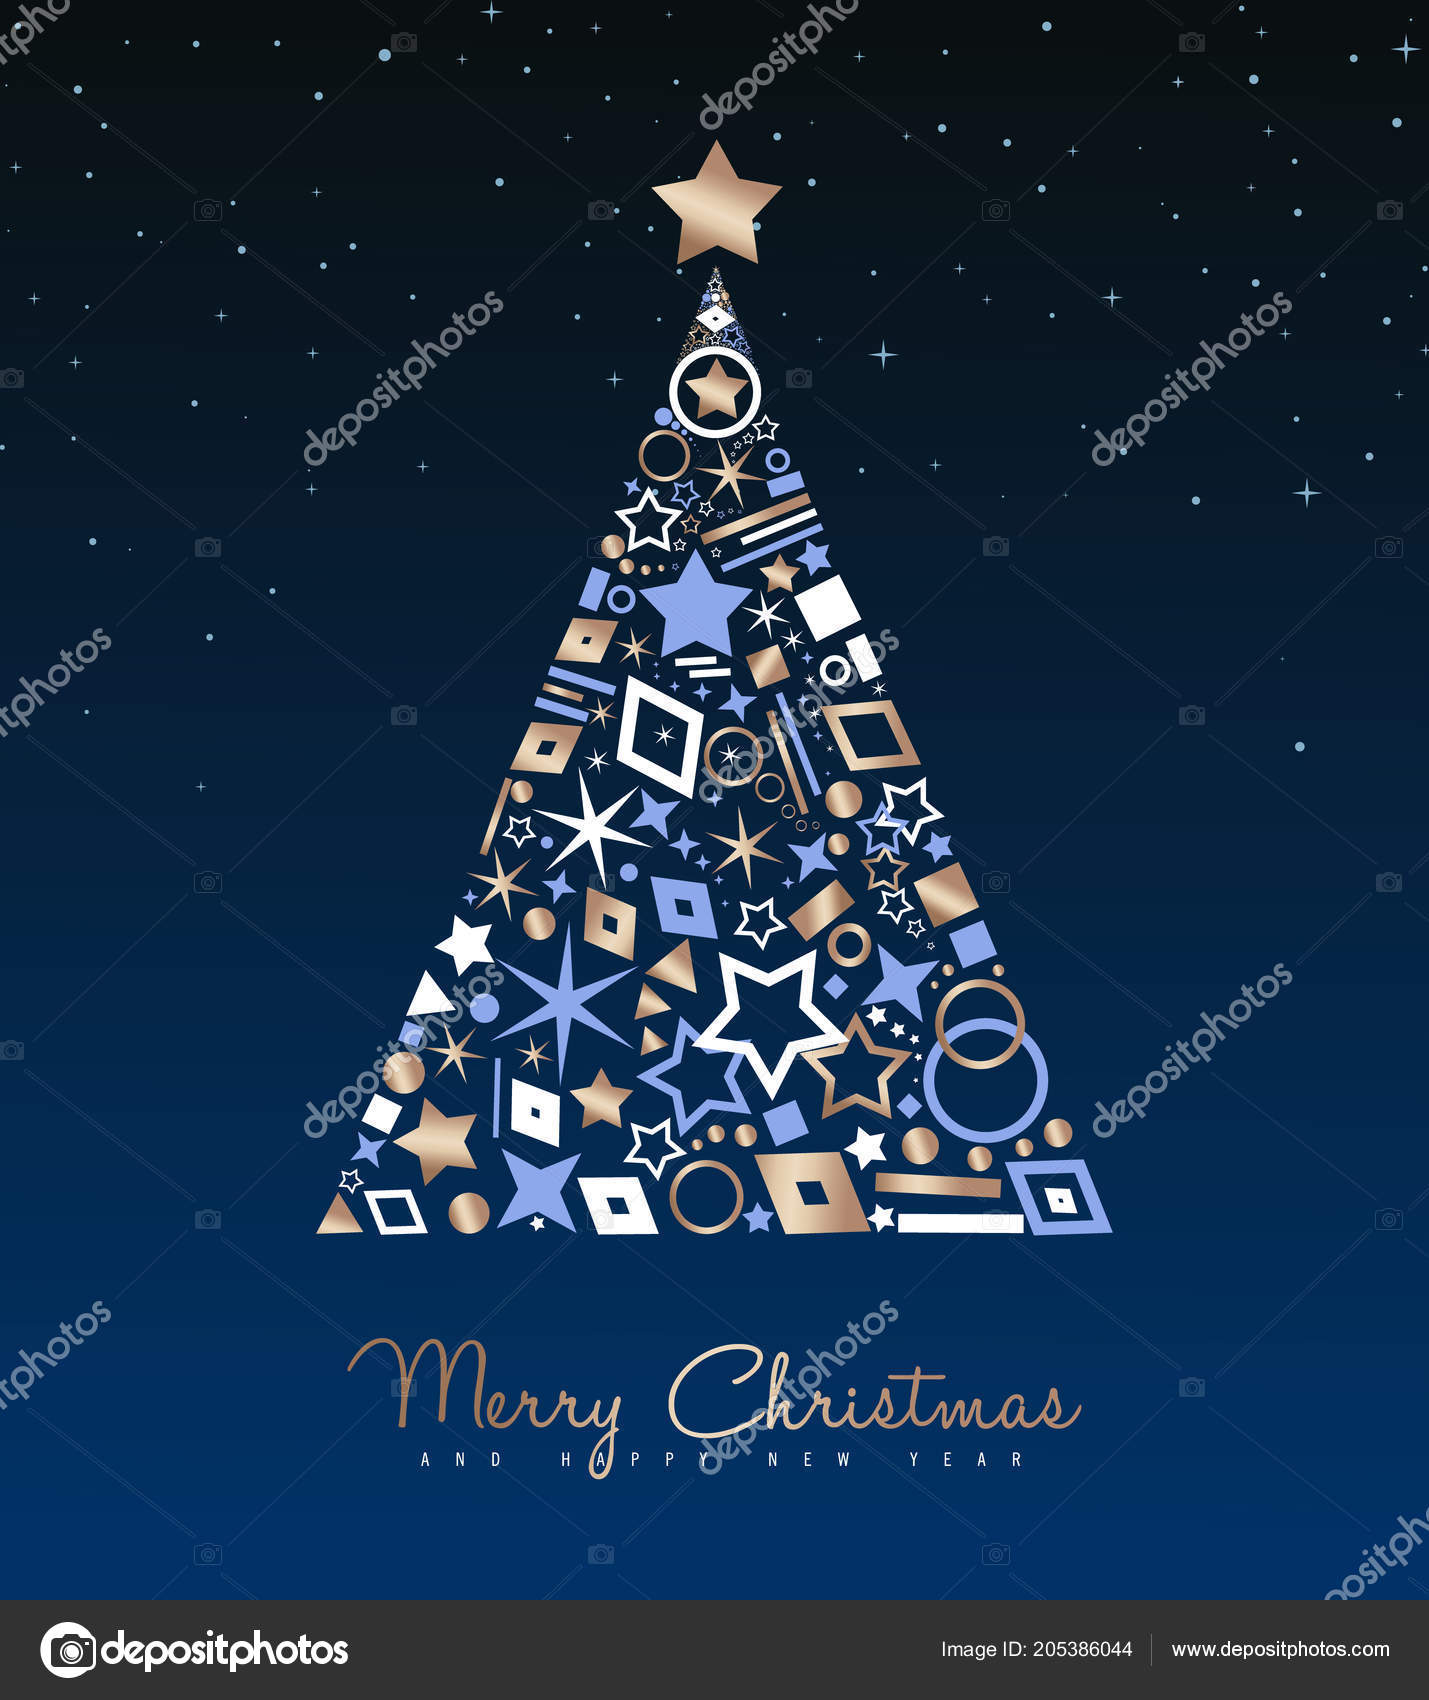 merry christmas new year luxury greeting card illustration xmas pine stock vector